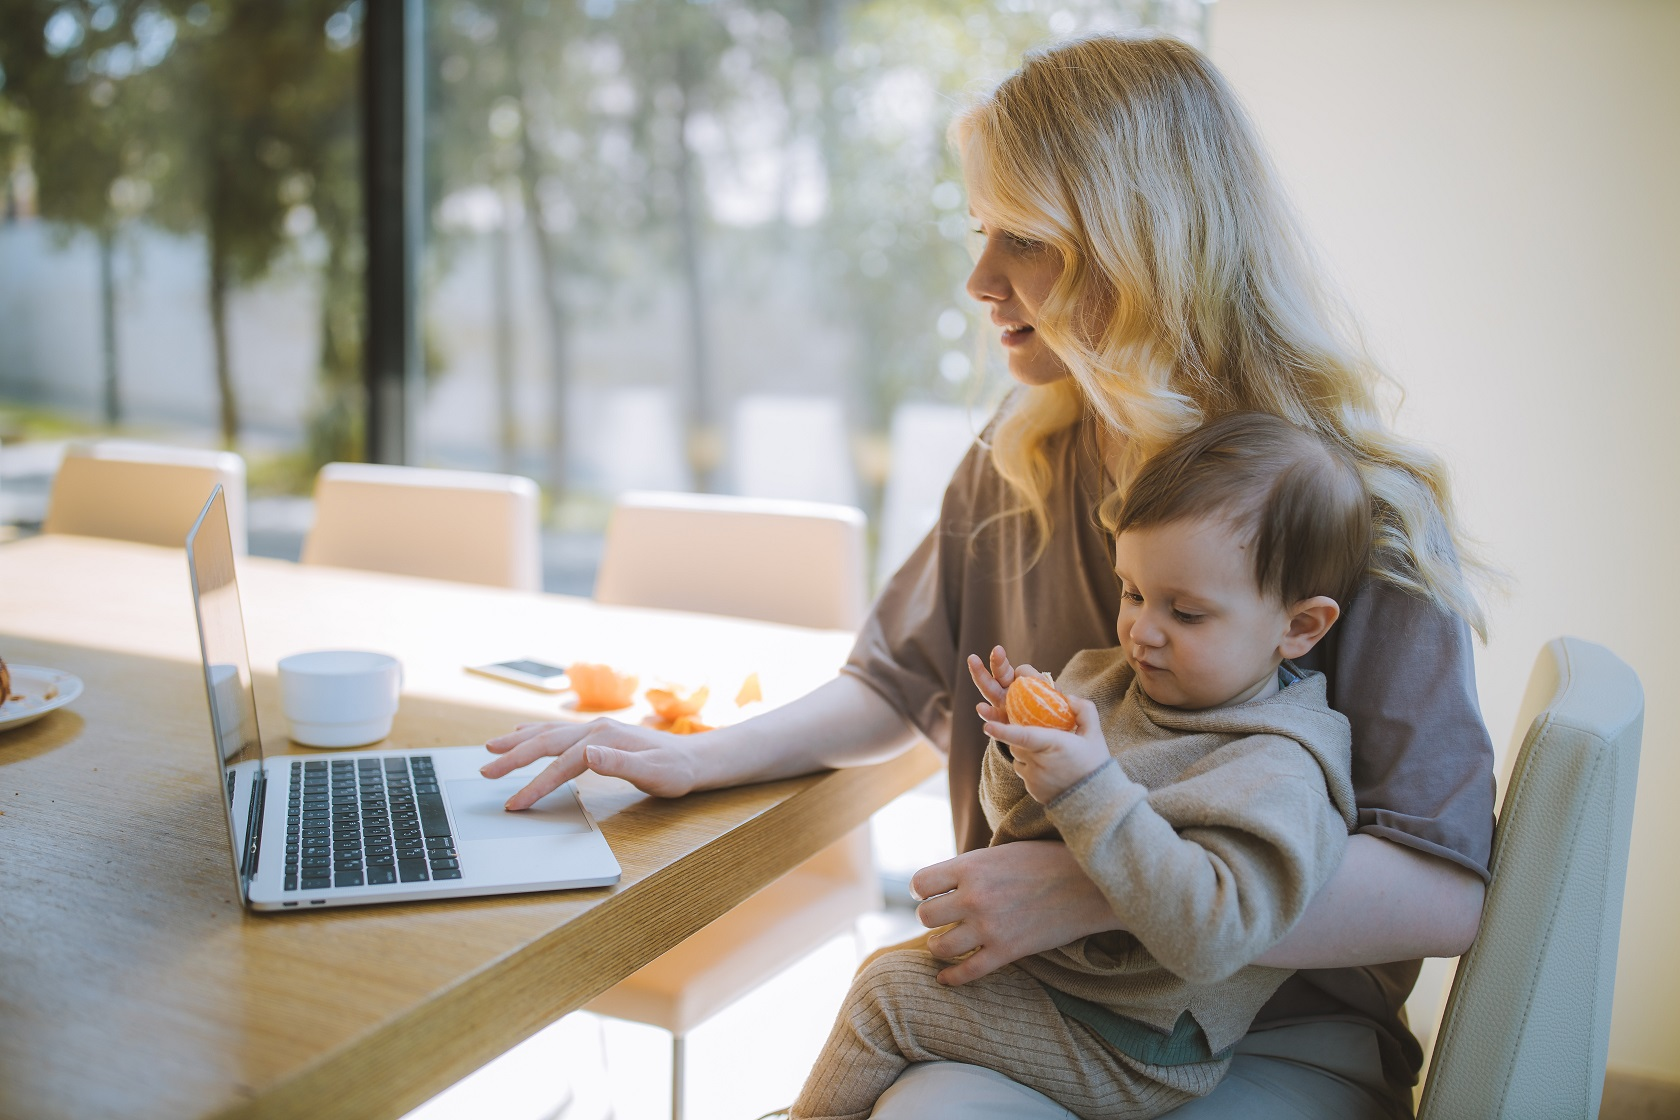 woman with child on lap doing work